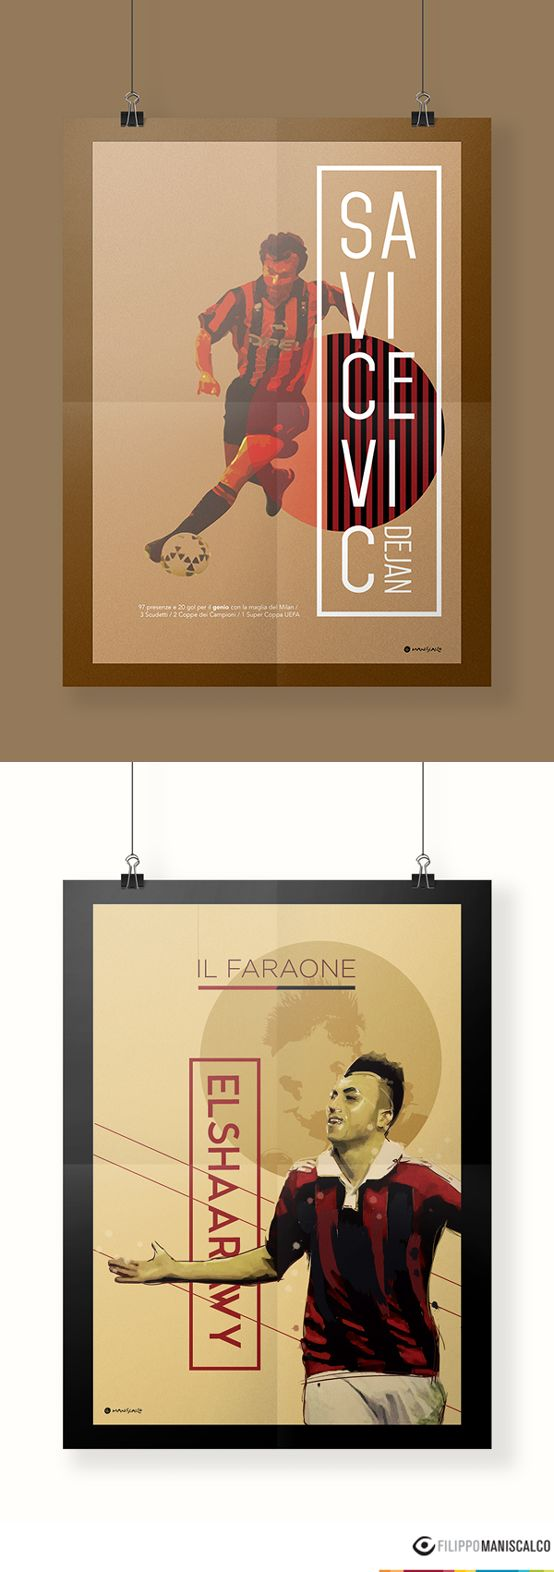 Collection of nine players on the illustrations of the 'Series A, the most beautiful championship in the world'. Graphic reproductions made through different styles. #SerieAPoster #Savicevic #Genio #ElShaarawy #ACMilan    In Stock $33.28